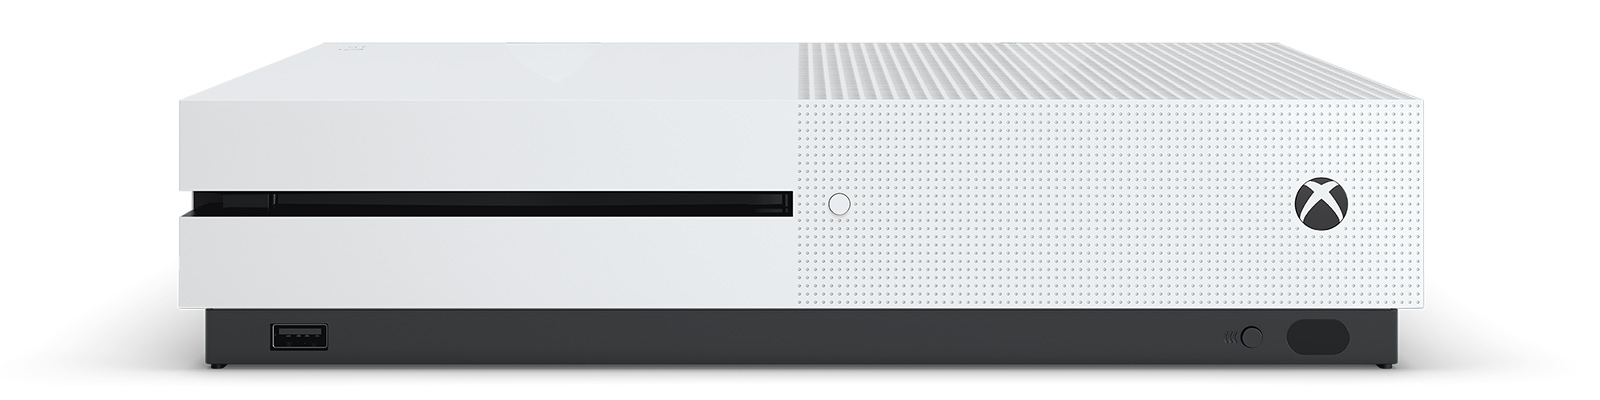 Xbox One S | The ultimate games and 4K entertainment system